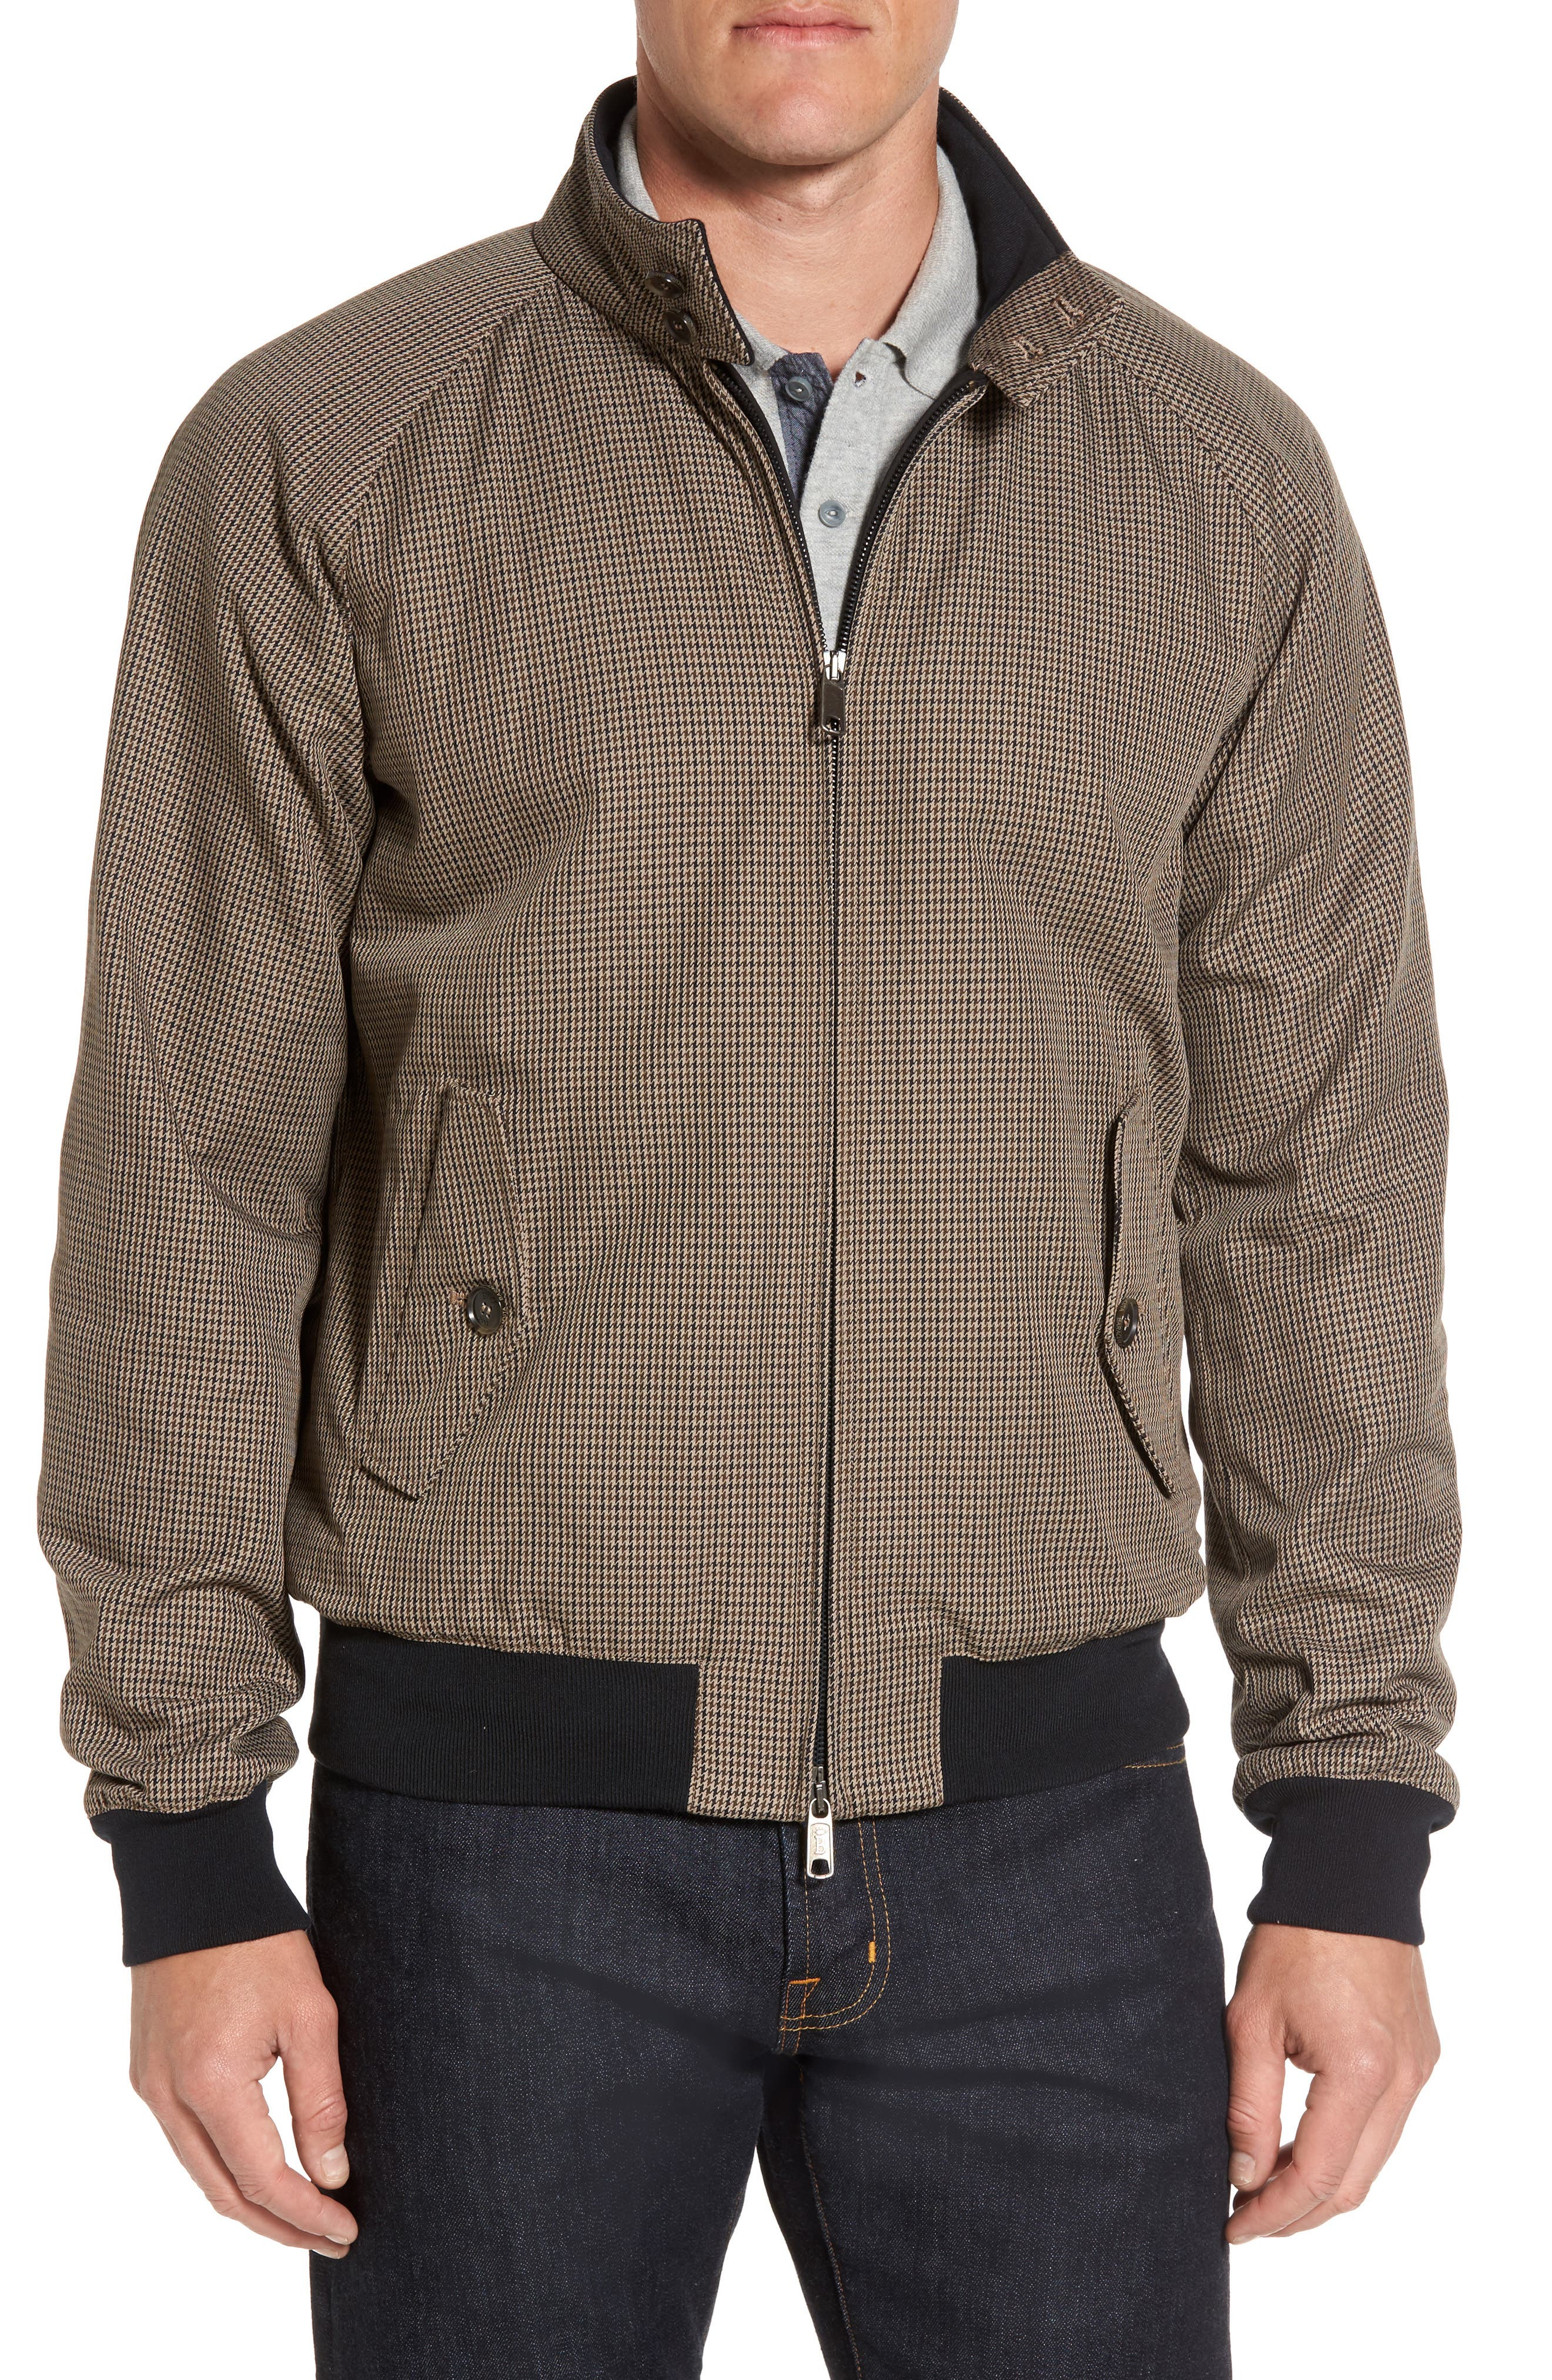 Baracuta G9 Houndstooth Harrington Jacket